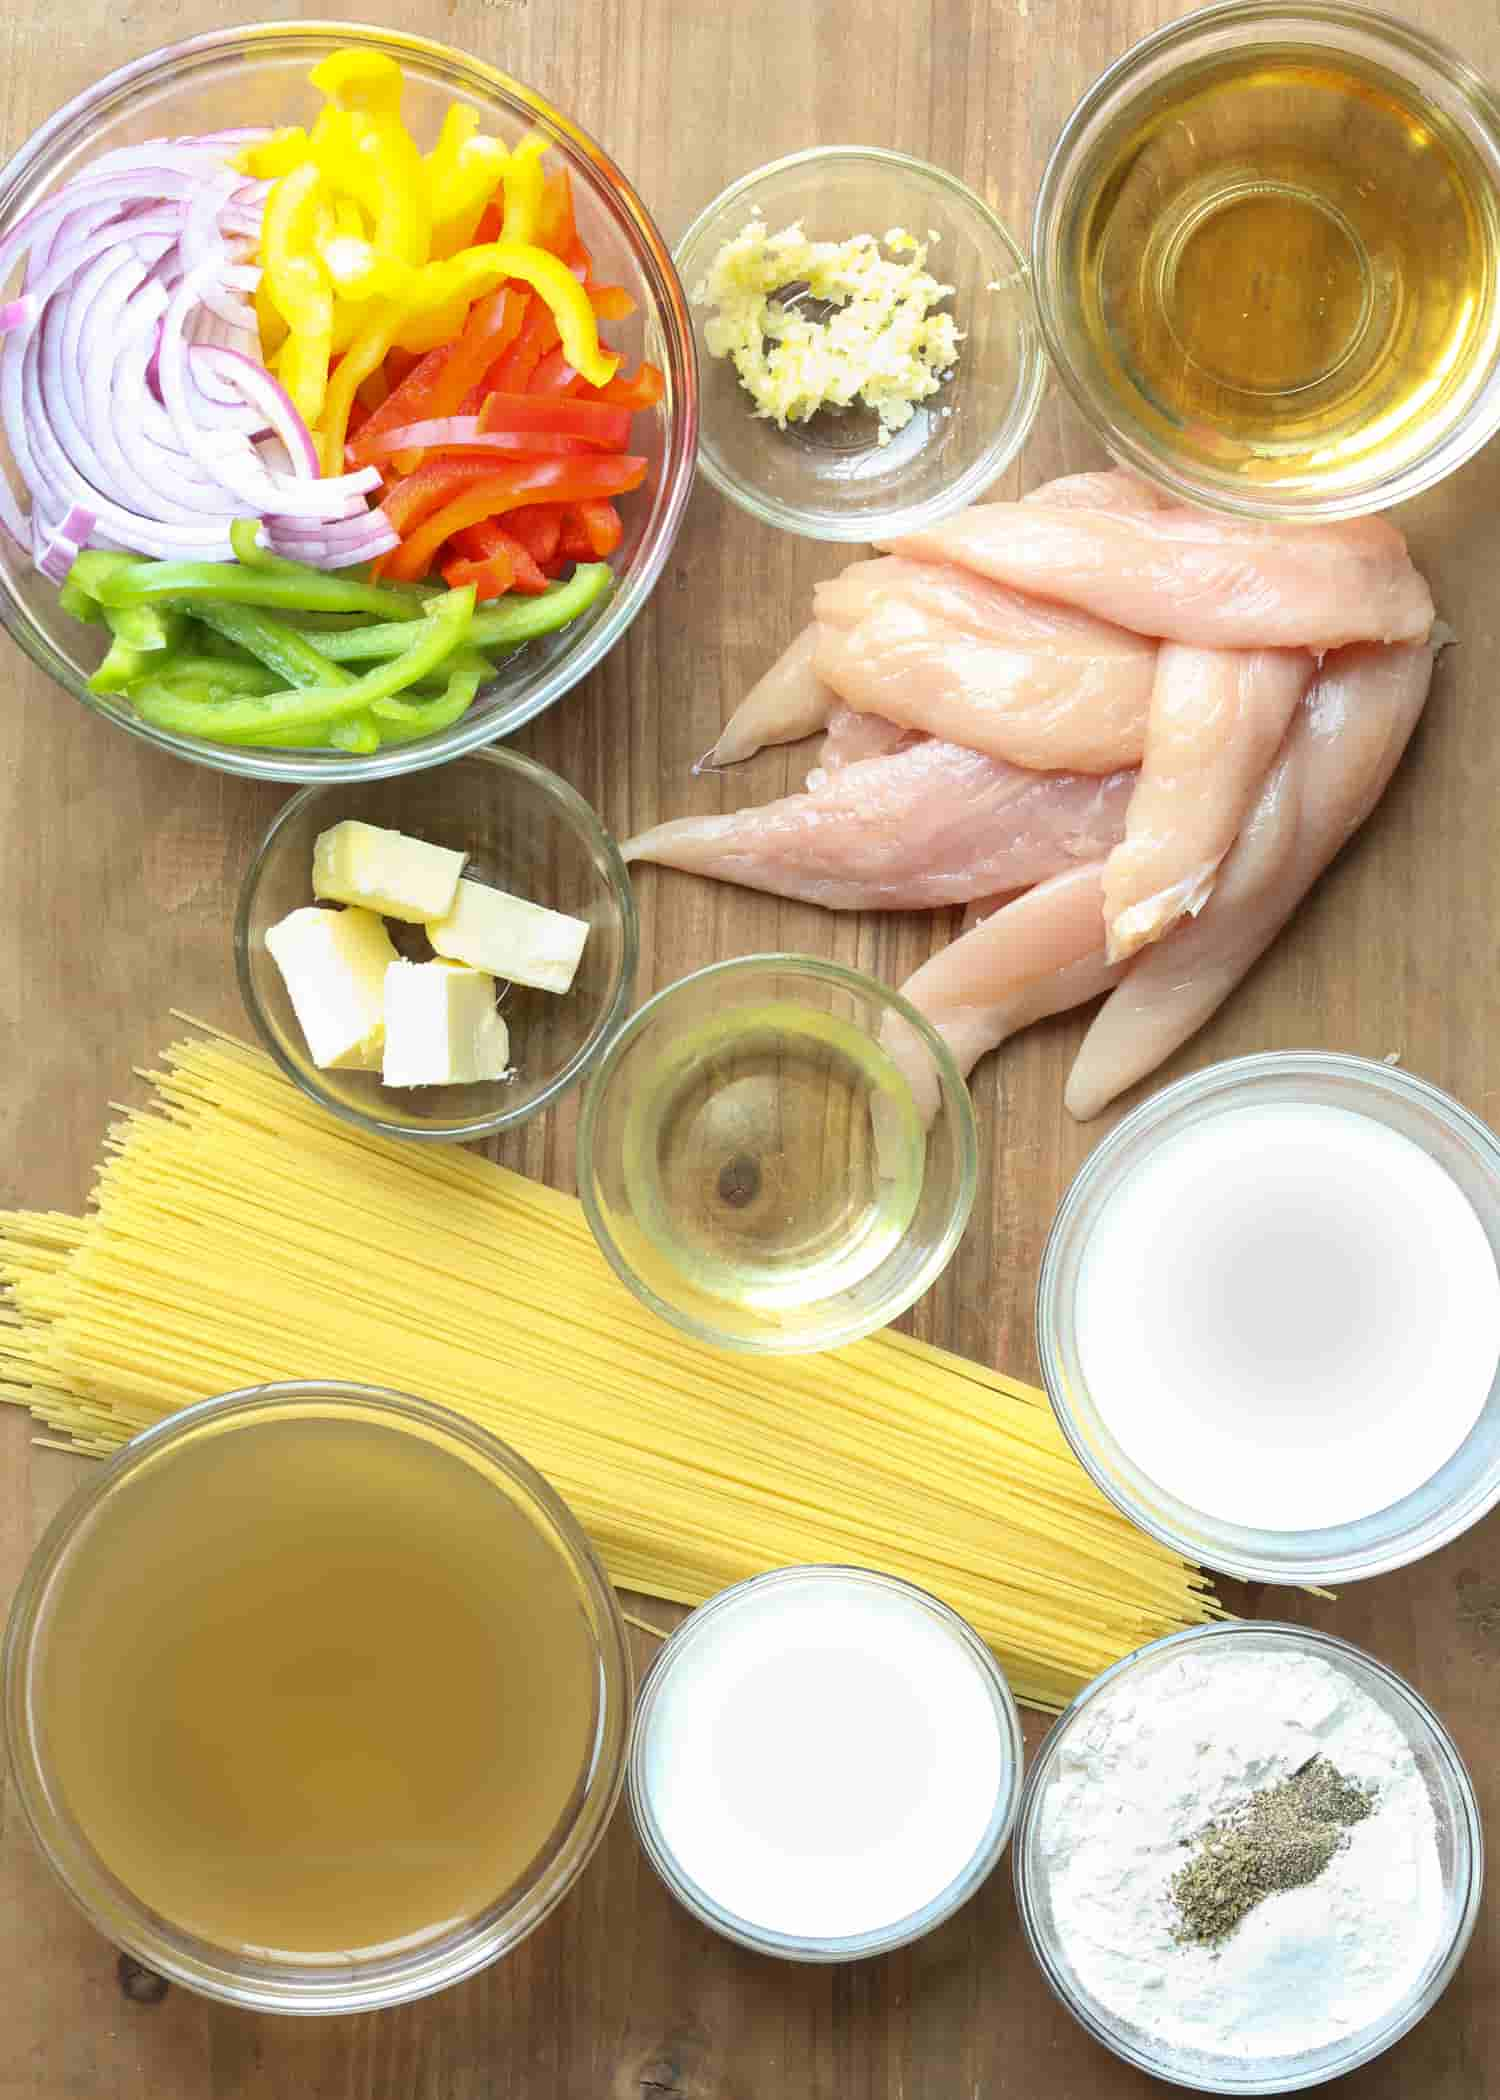 Ingredients for chicken scampi recipe.